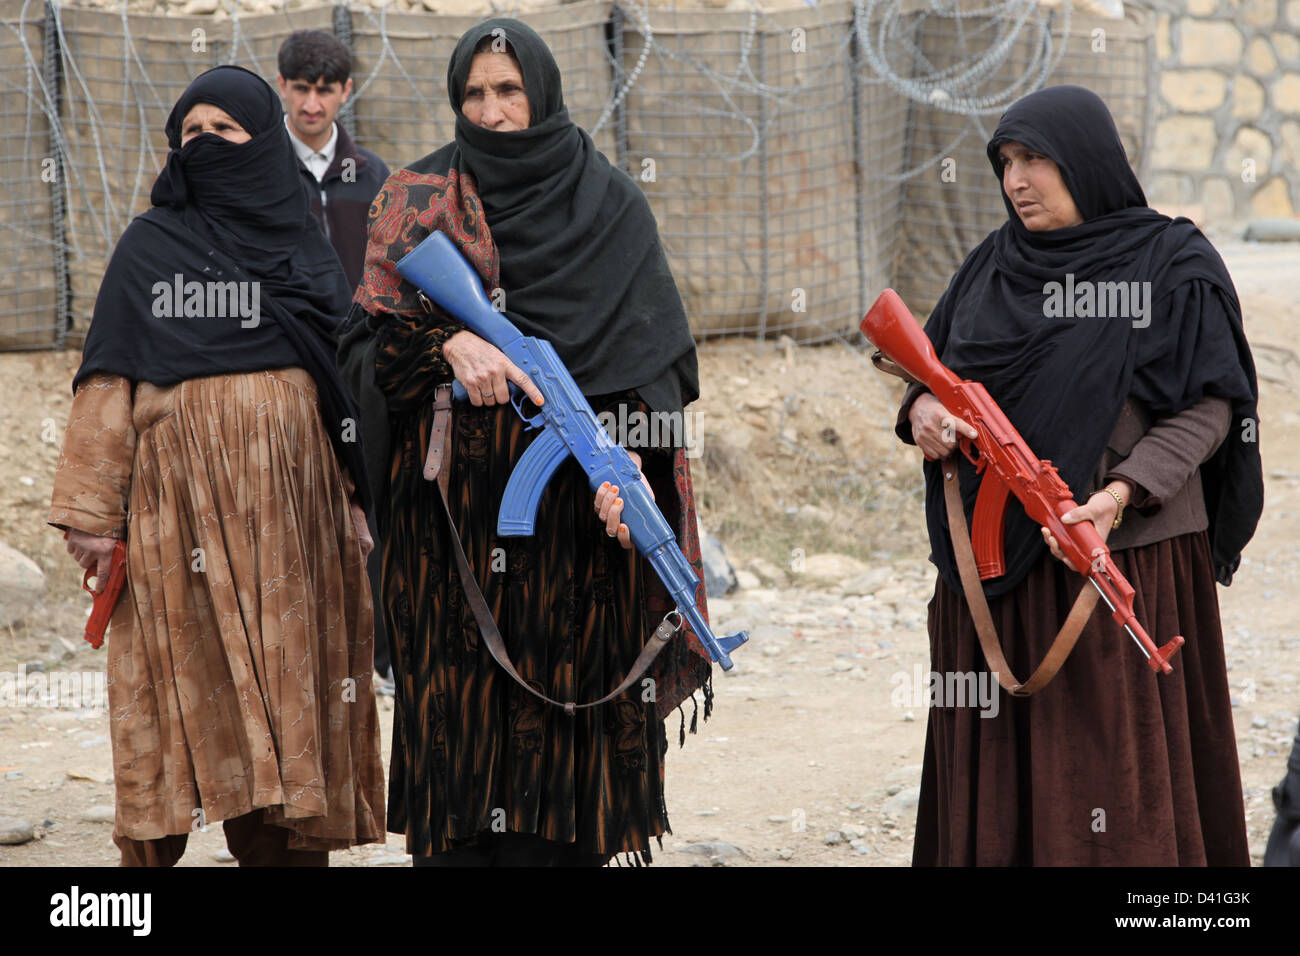 Women Afghan Uniform Police wield dummy training weapons while conducting a training exercise February 25, 2013 - Stock Image